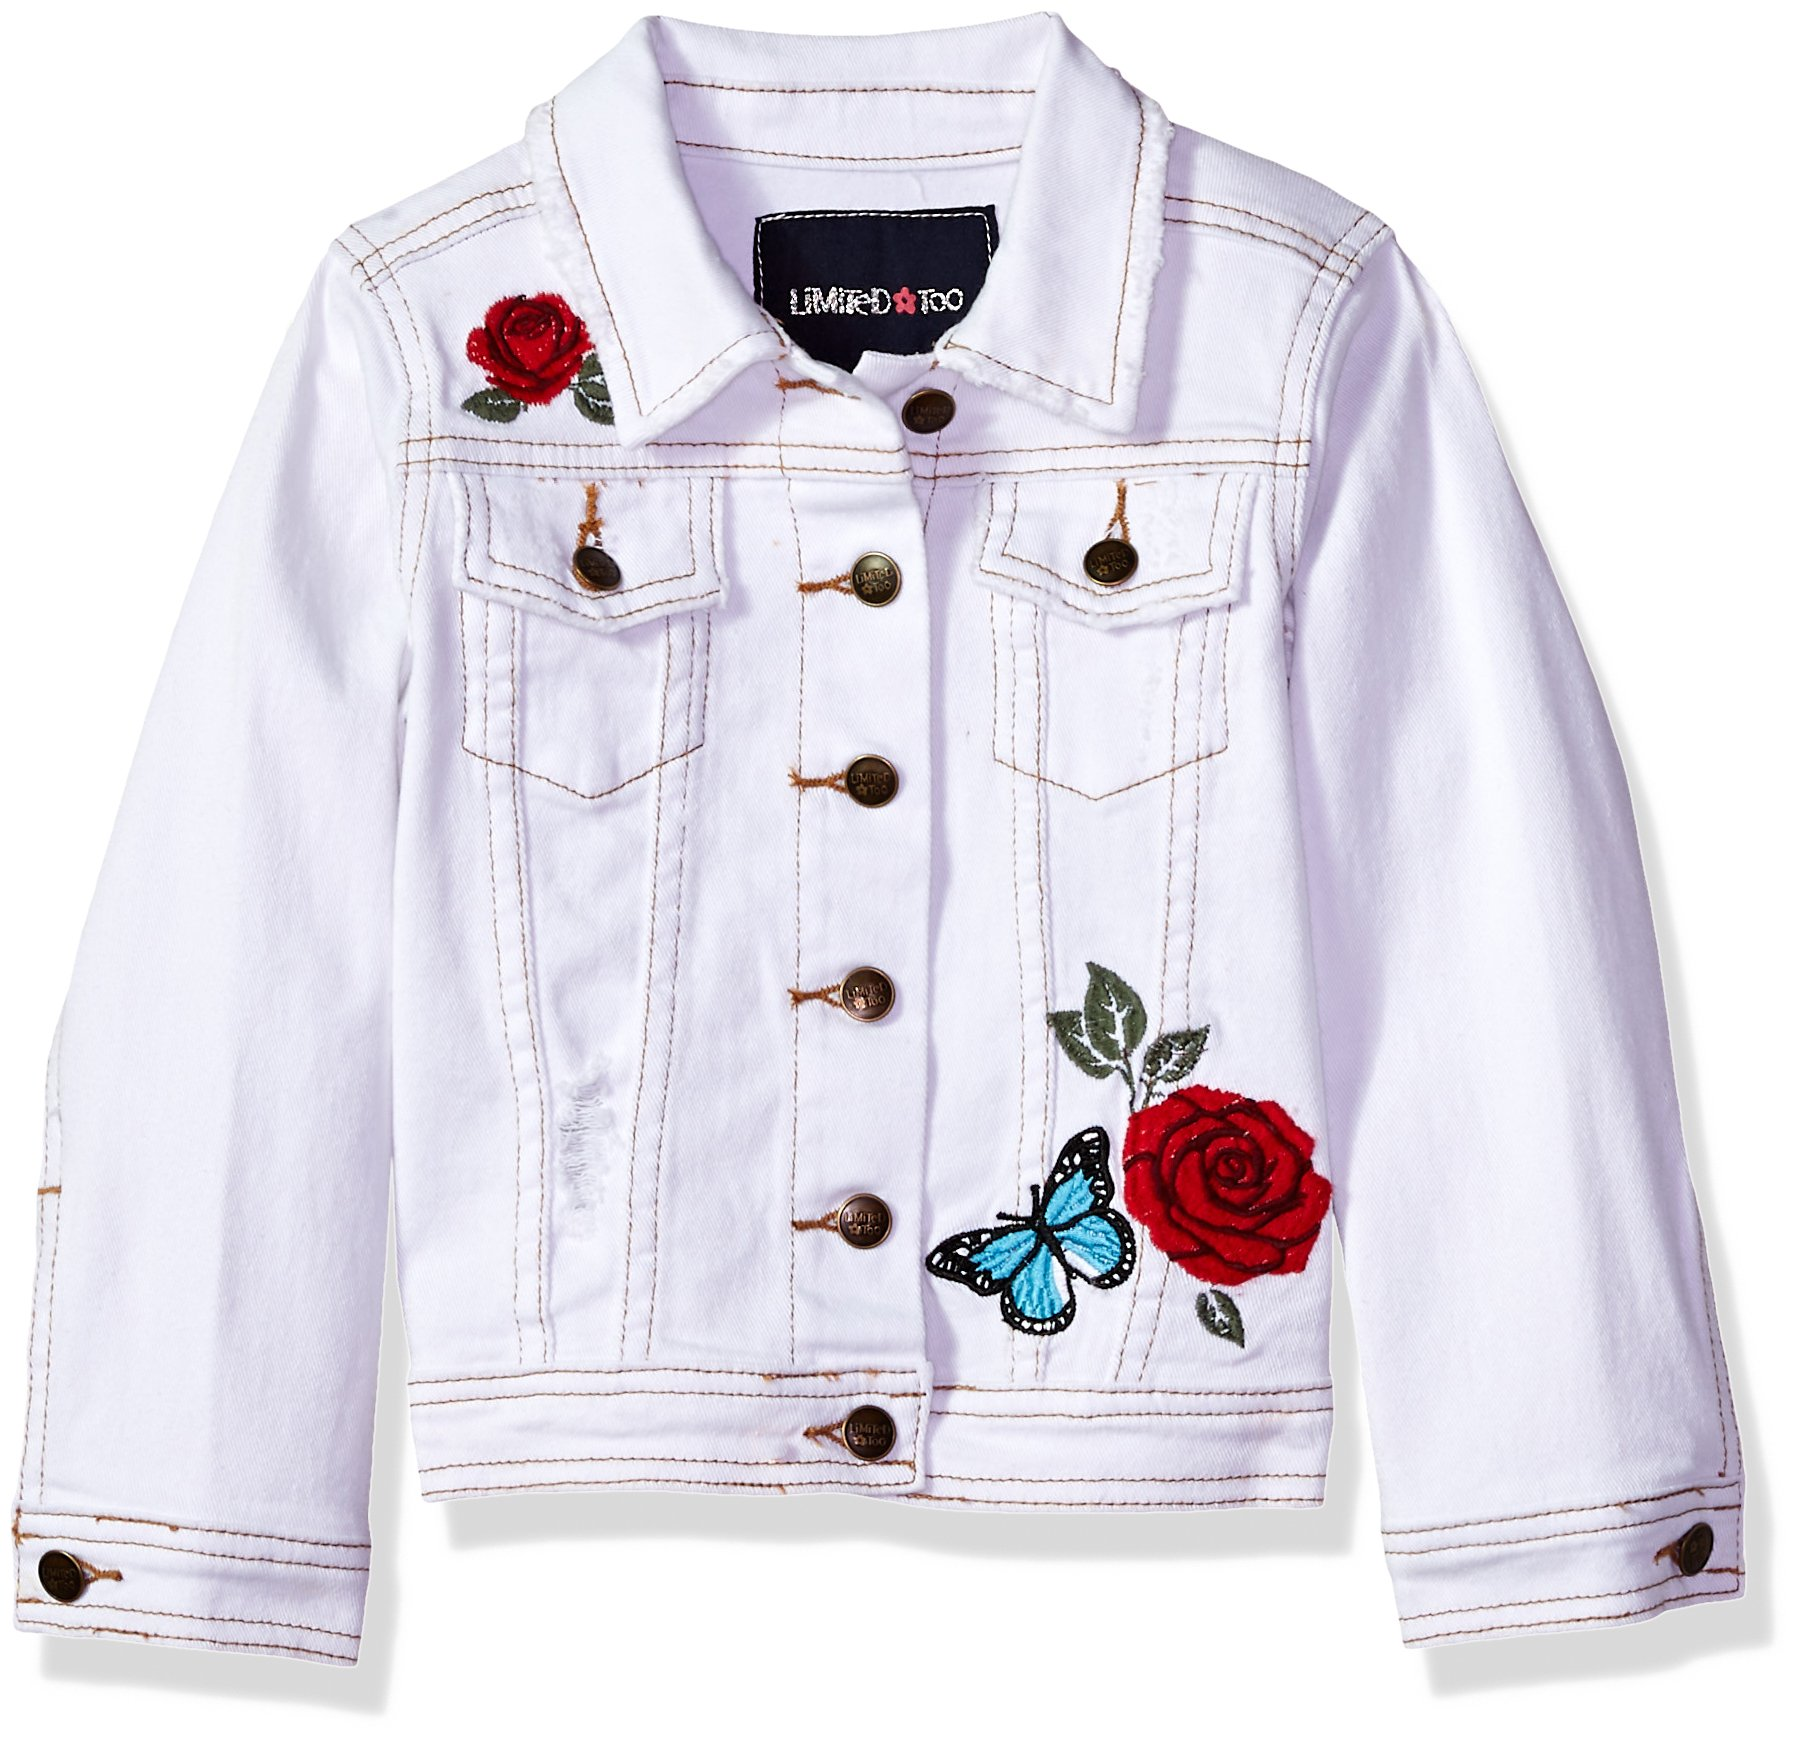 Limited Too Little Girls' Jean Jacket, White, 10/12 by Limited Too (Image #1)